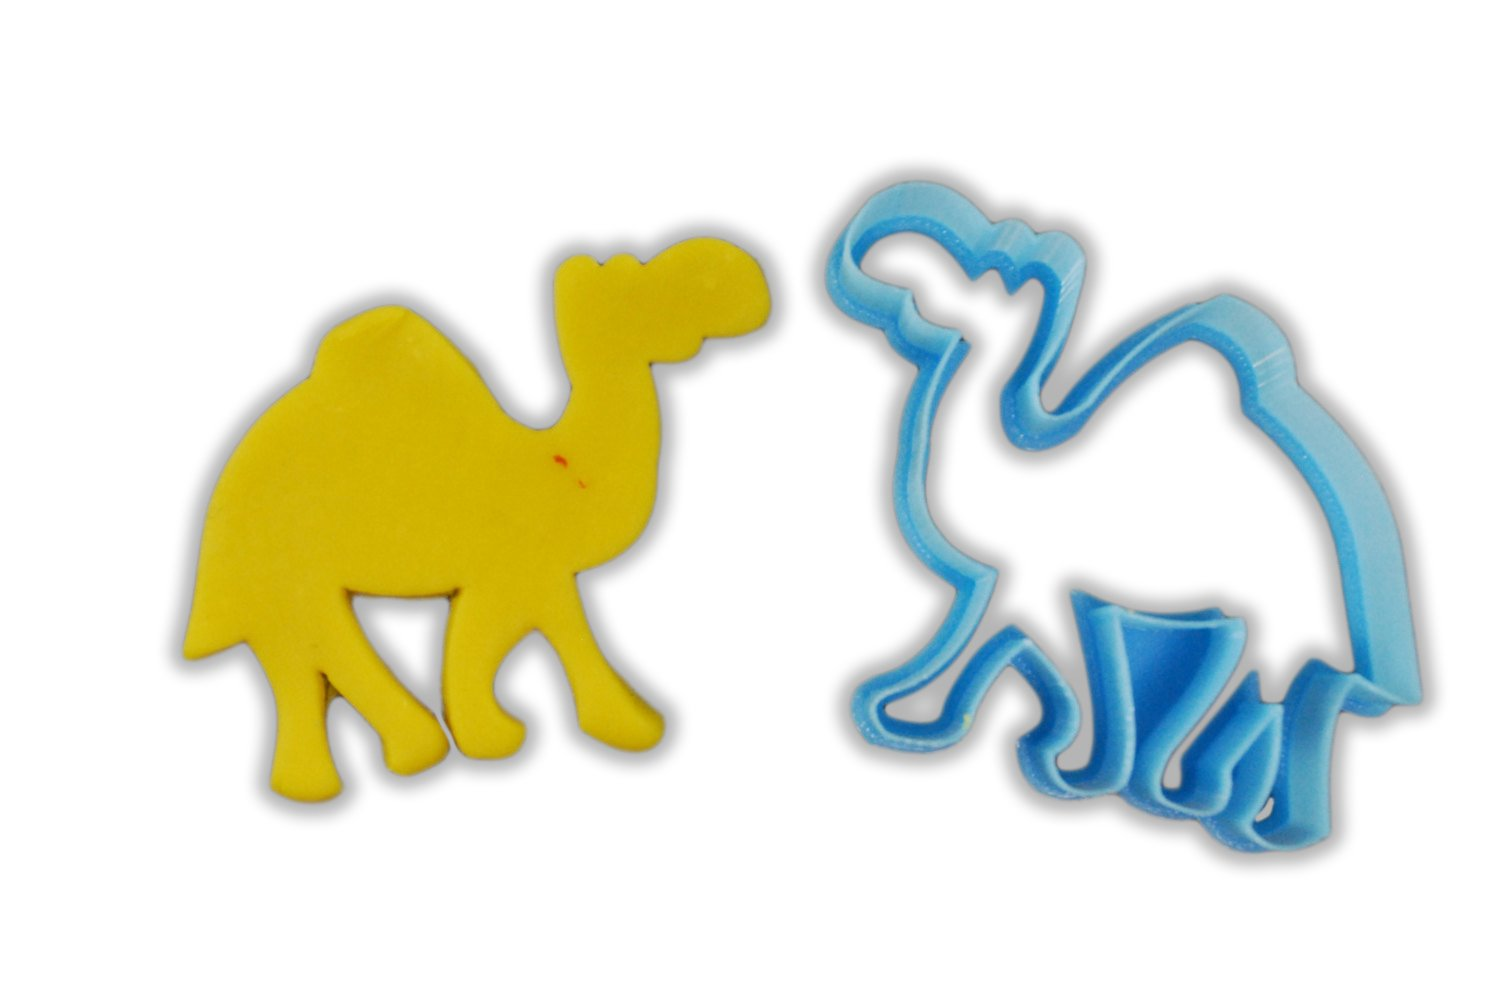 Camel Animal Cookie Cutter - LARGE - 4 Inches by CookieCutterKingdom (Image #1)